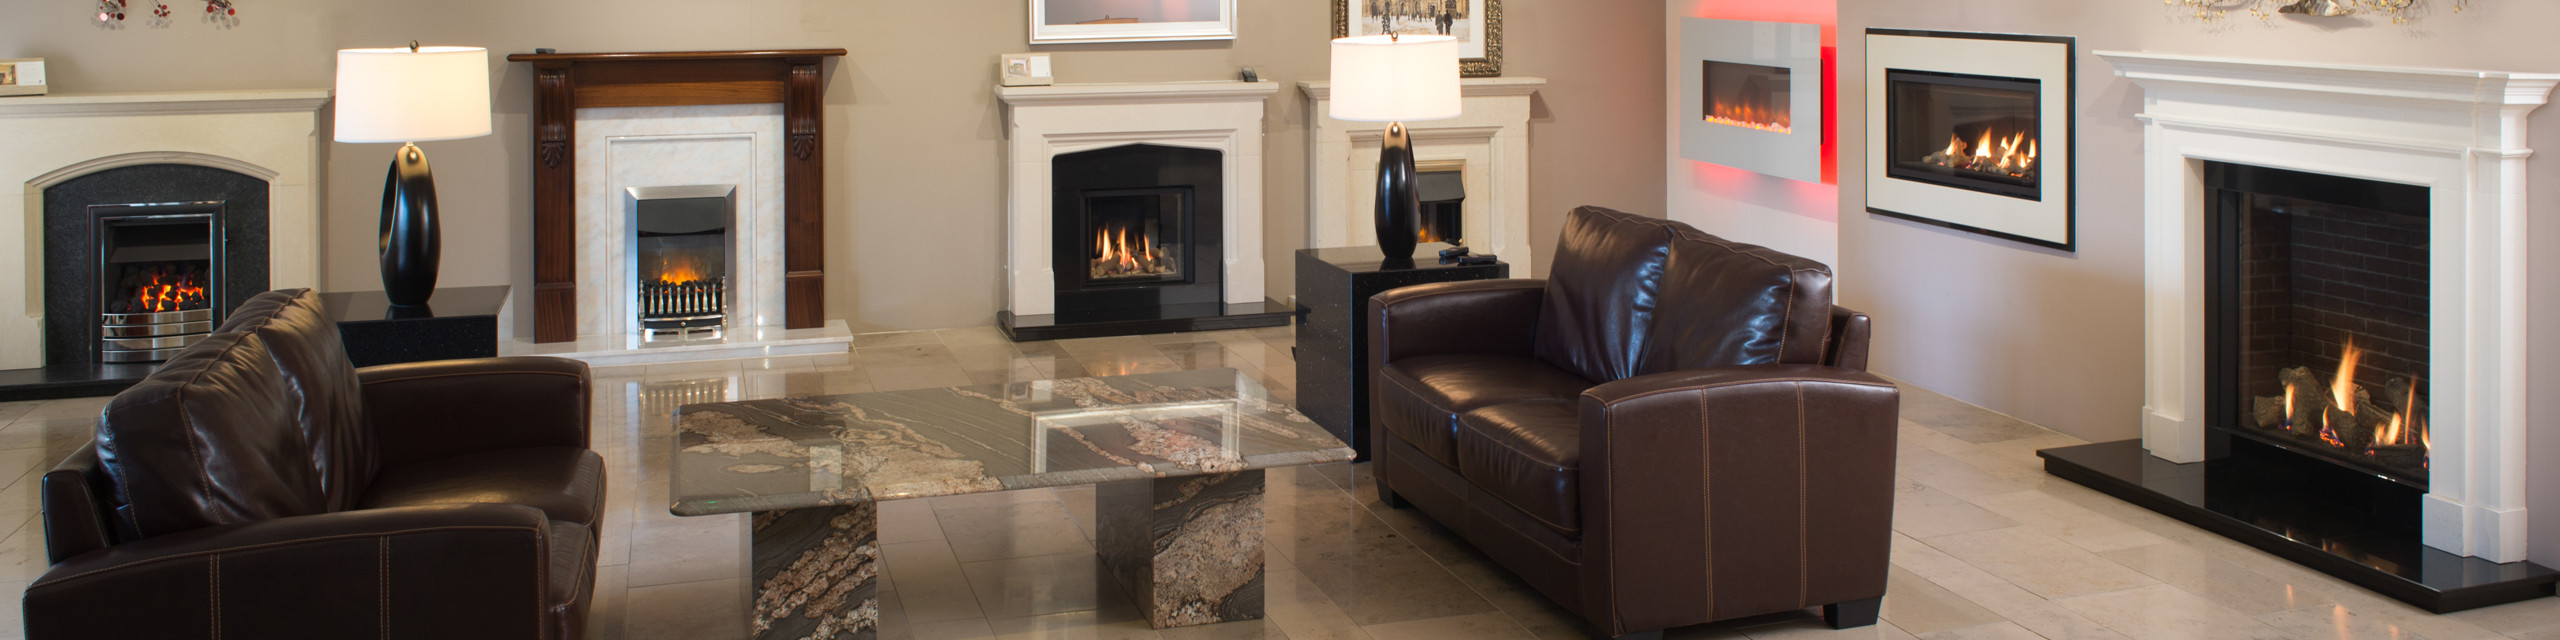 fireplace_banner.2560x640